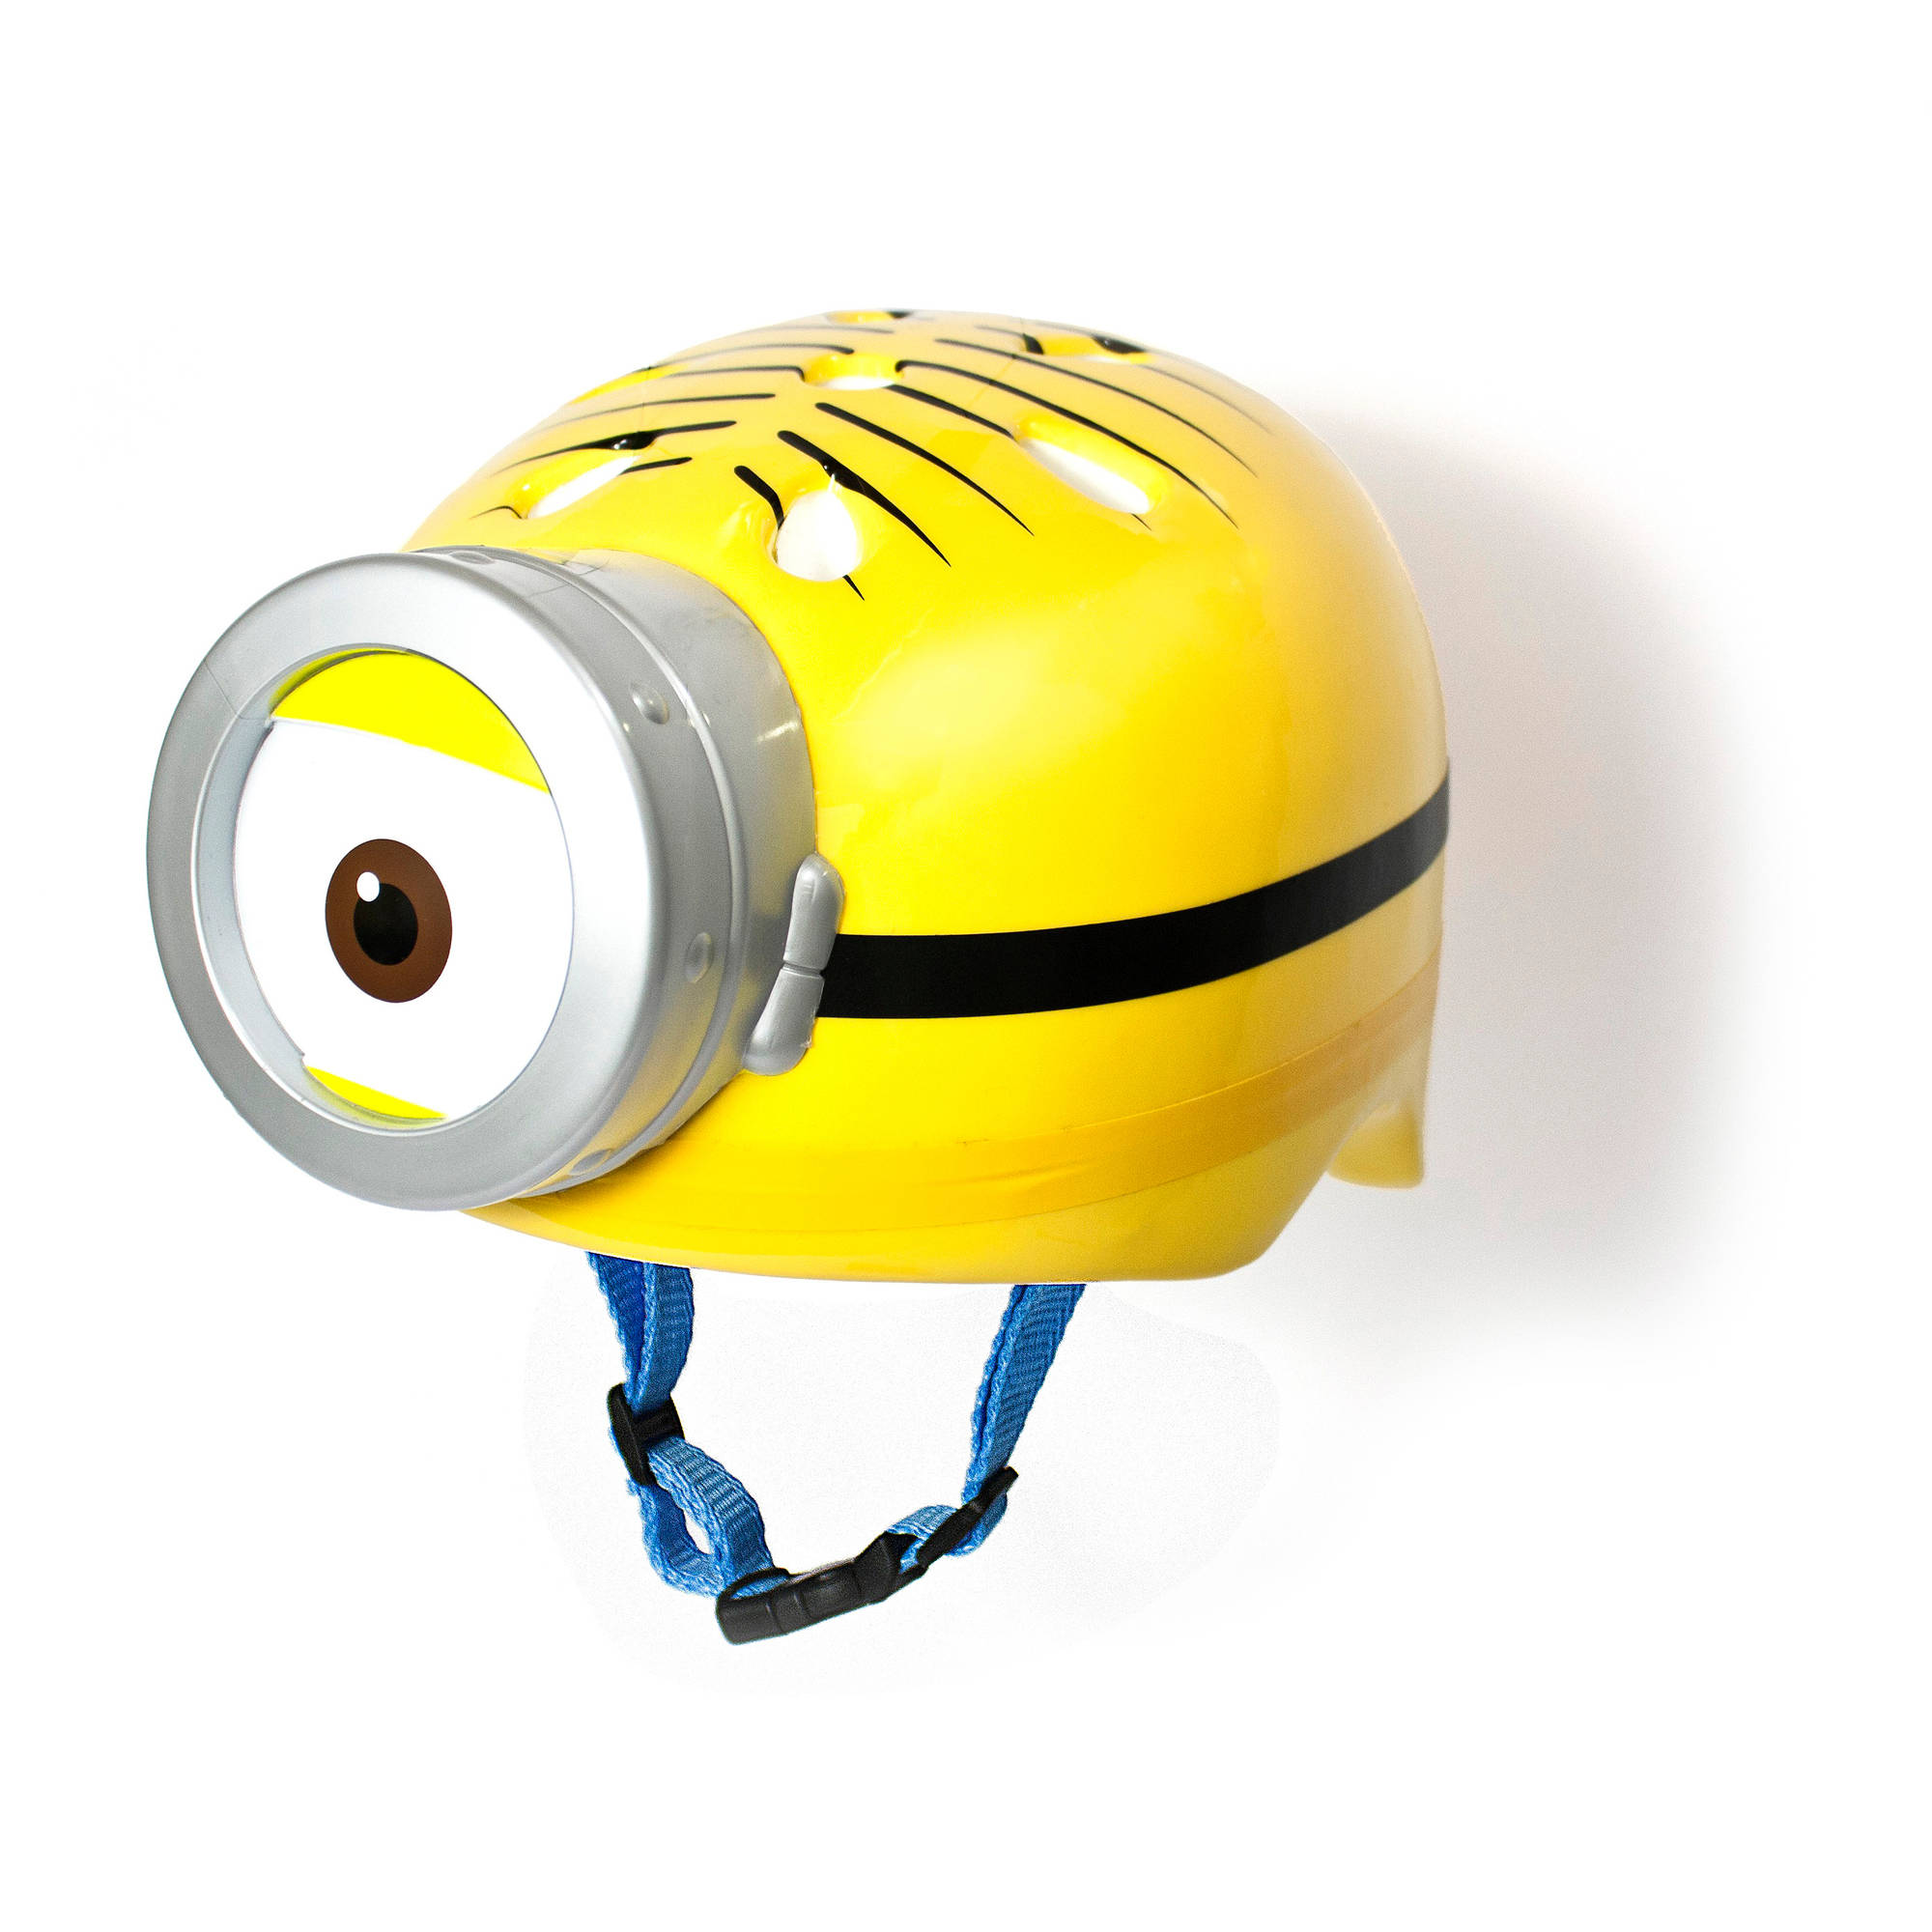 Despicable Me Minion One Eye Multi-Sport Helmet, Youth